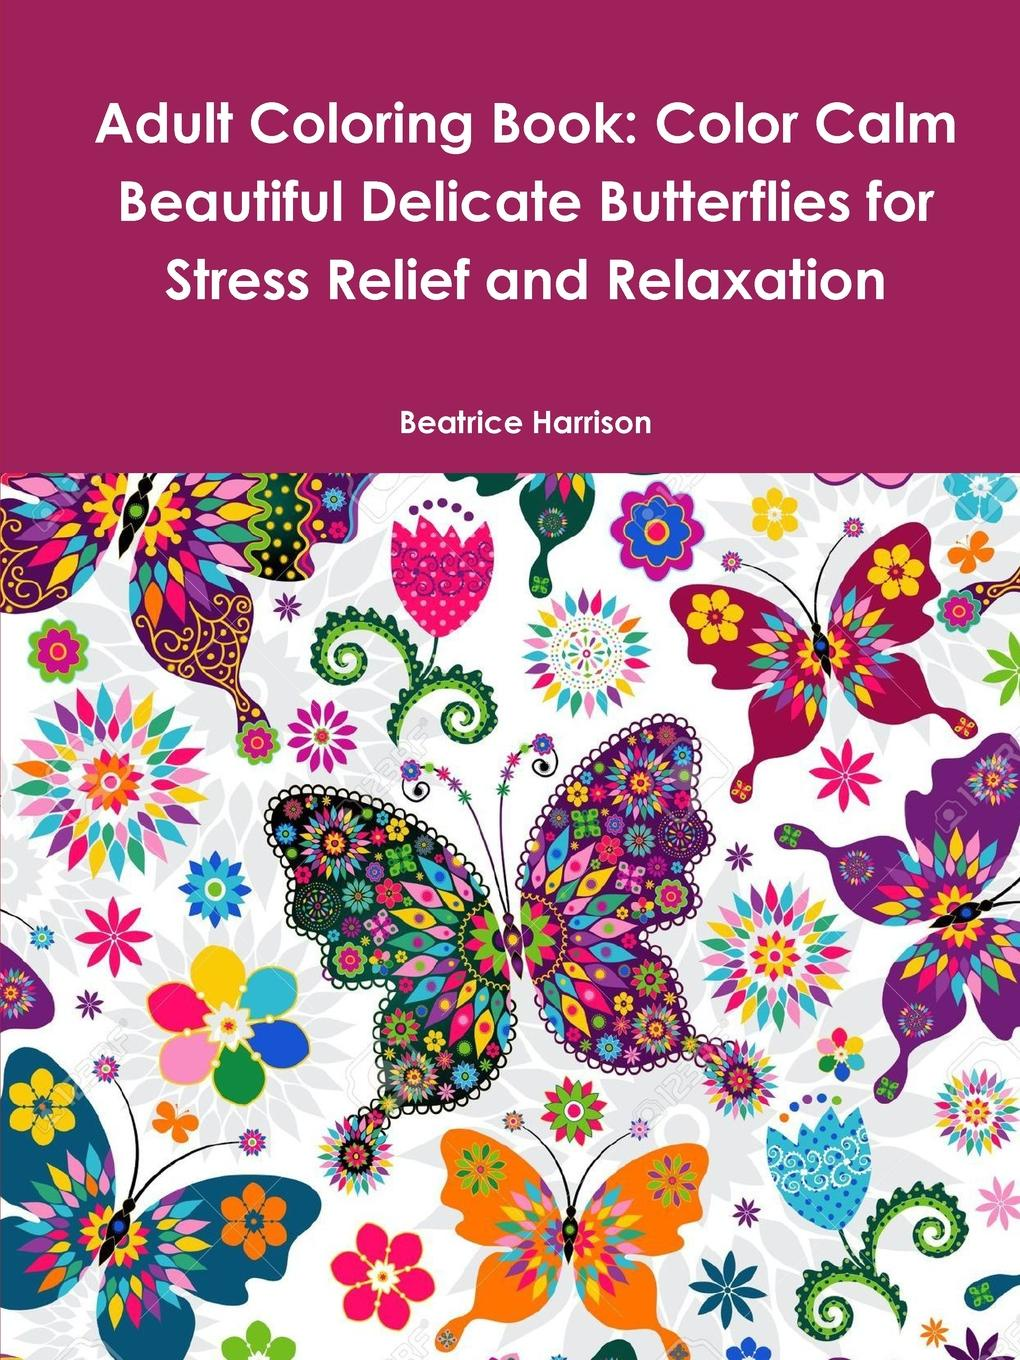 Beatrice Harrison Adult Coloring Book. Color Calm Beautiful Delicate Butterflies for Stress Relief and Relaxation colorful hexagon fidget spinner adhd stress relief toy relaxation gift for adults